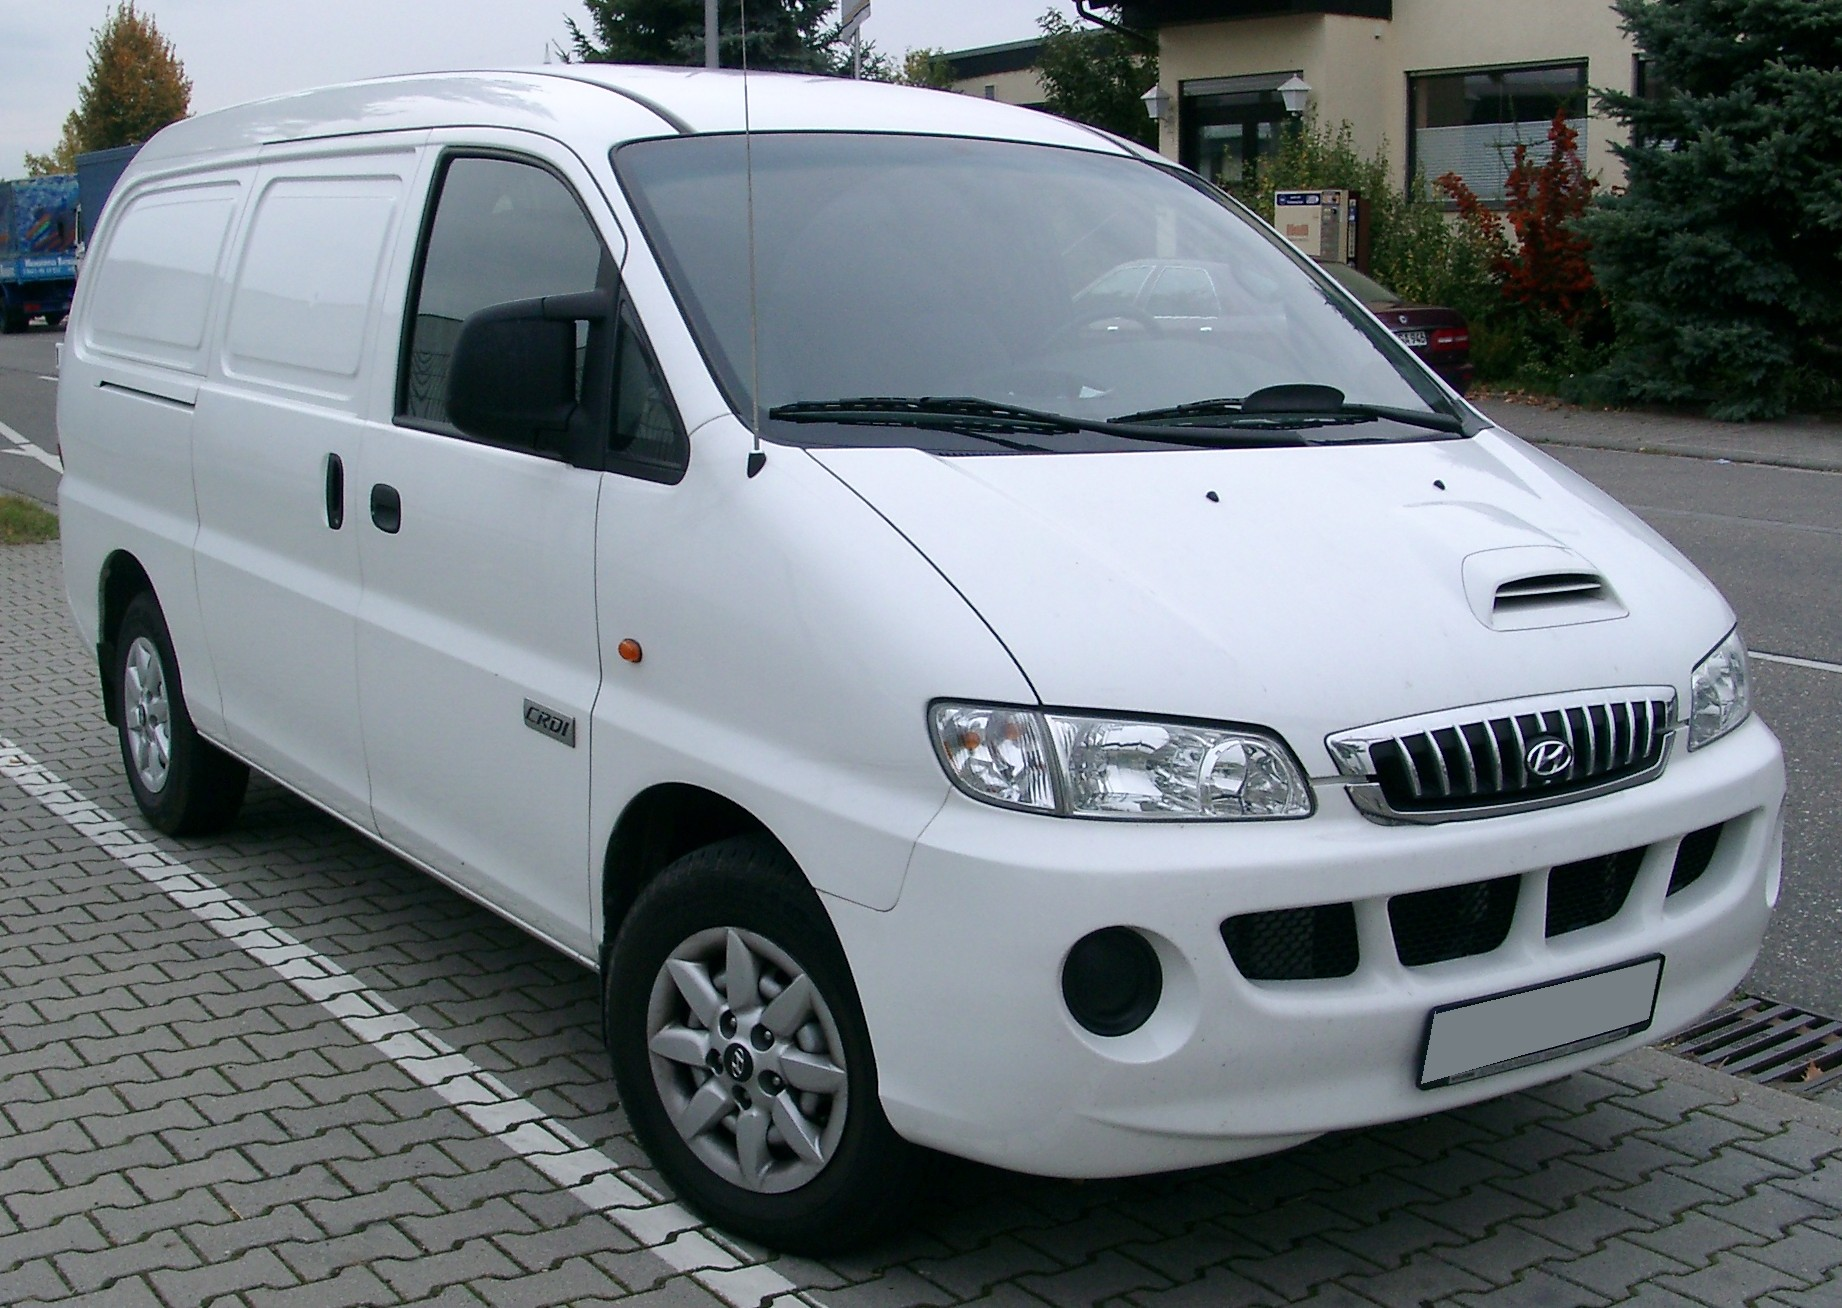 hyundai h 1 reviews hyundai h 1 car reviews. Black Bedroom Furniture Sets. Home Design Ideas